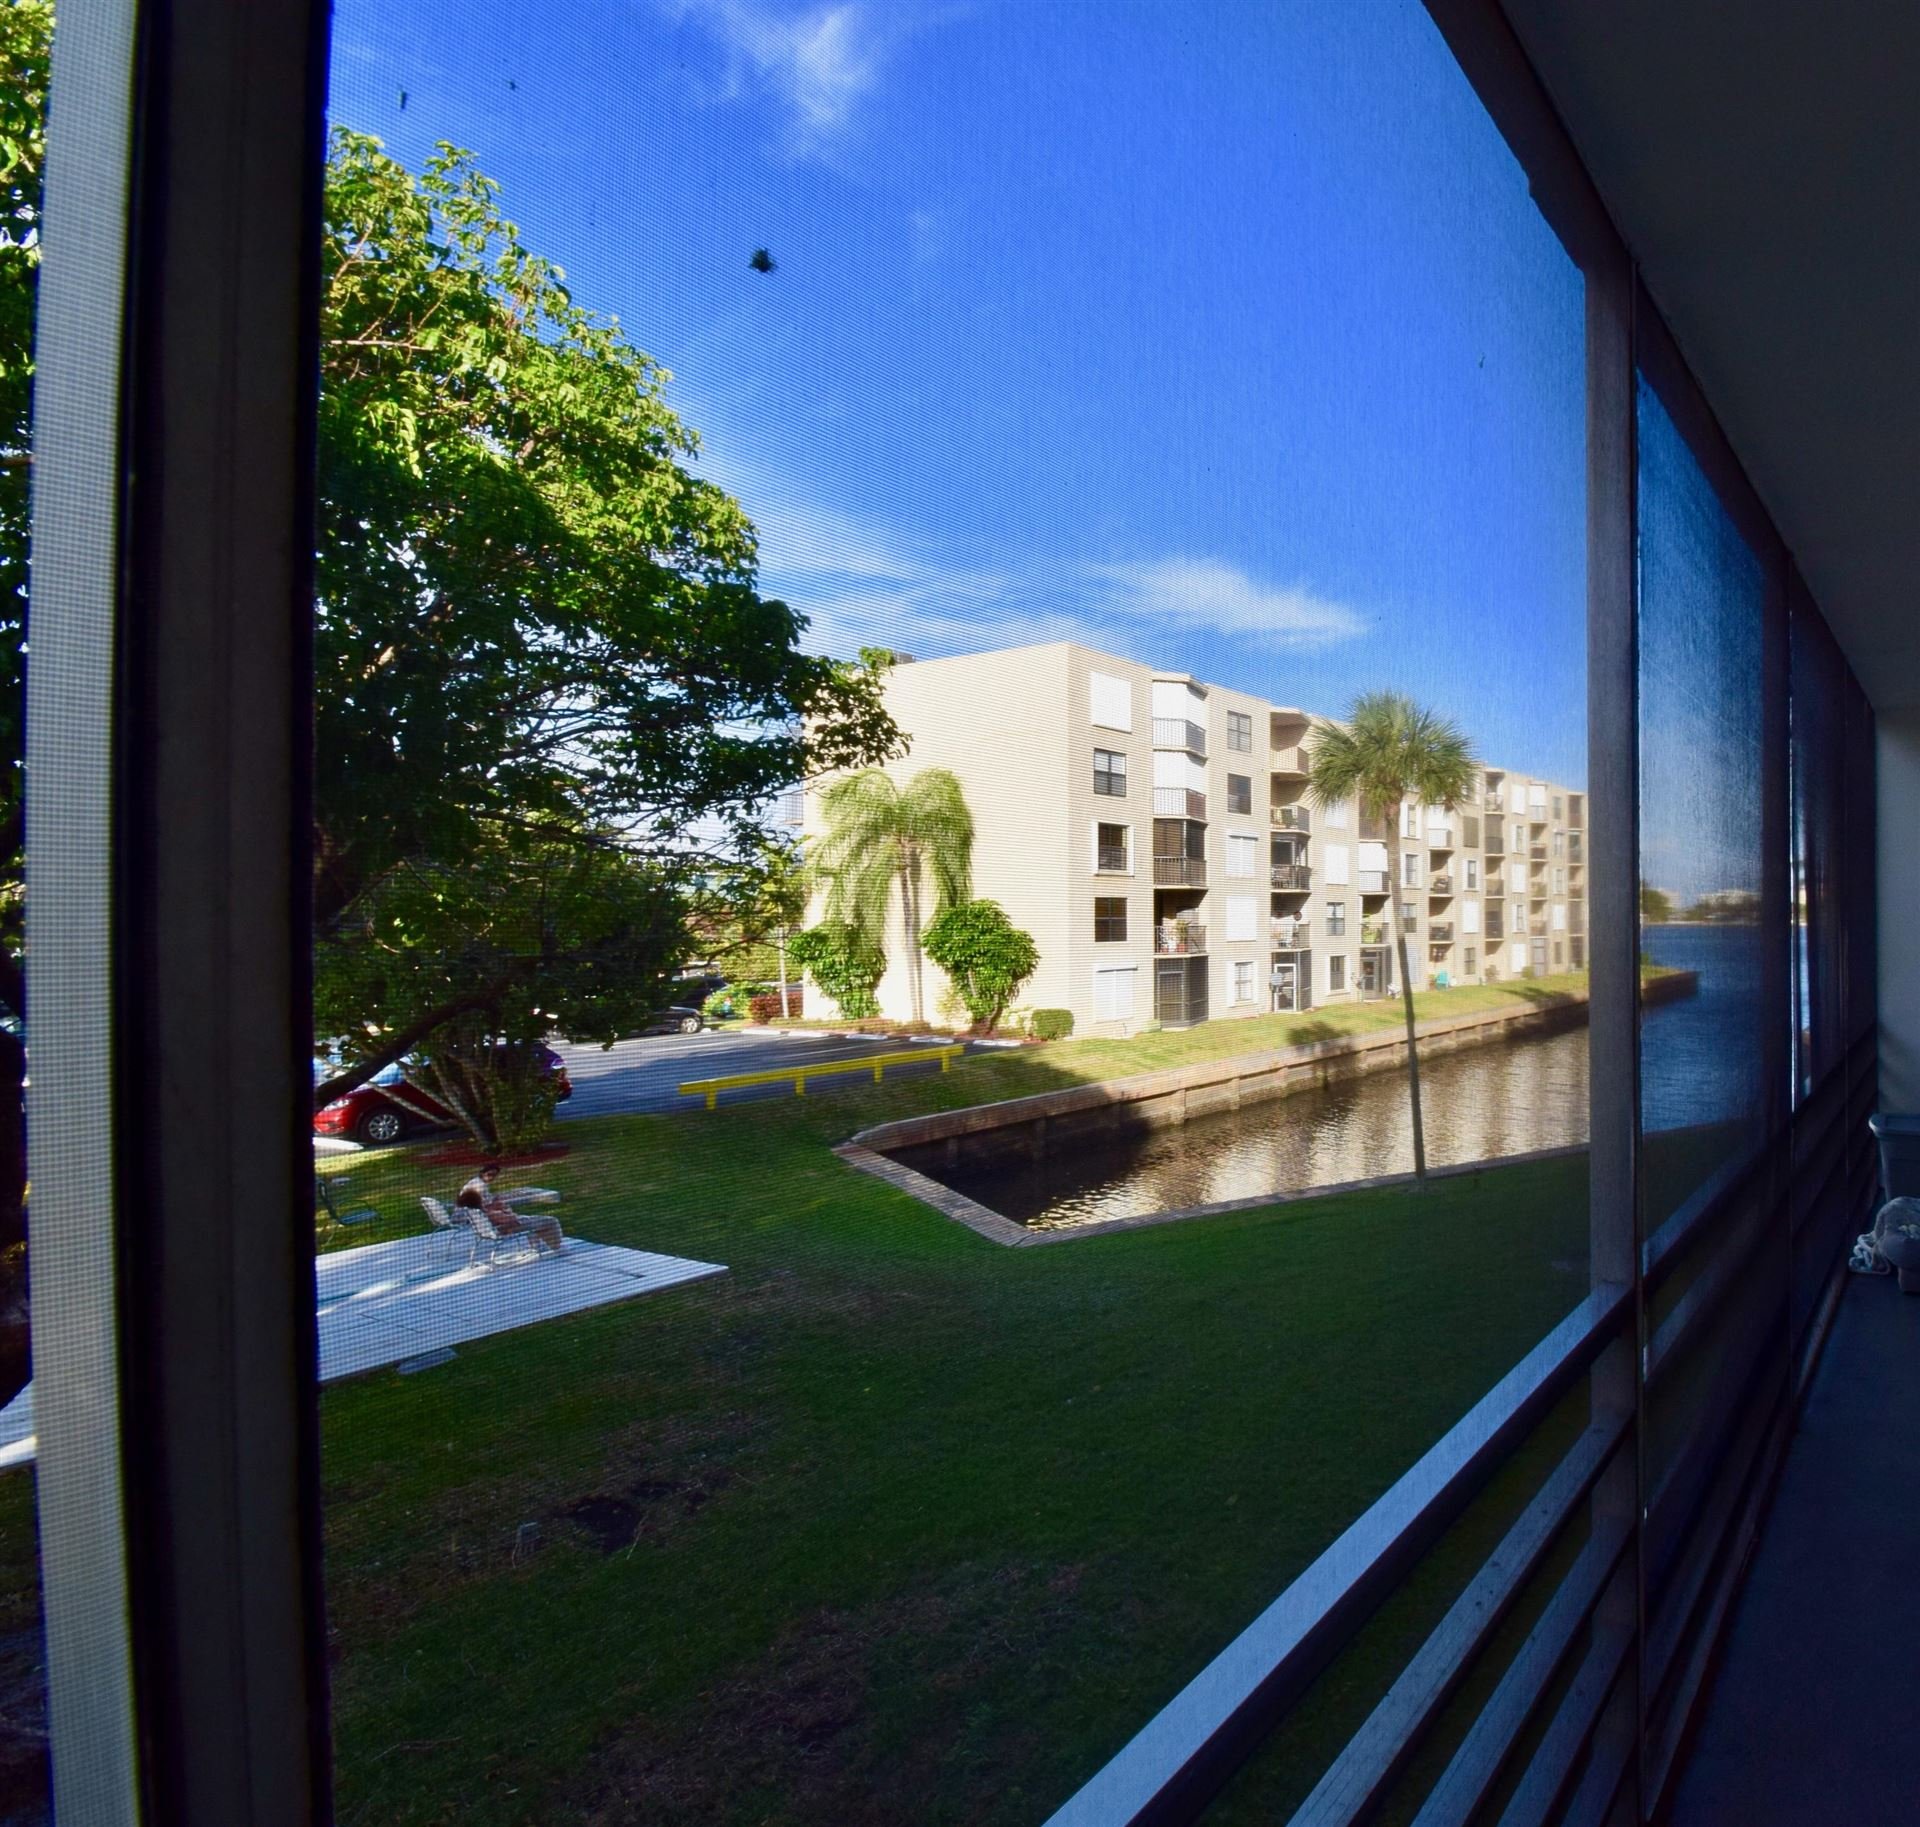 200 Waterway Drive S #203, Lantana, FL 33462 - MLS#: RX-10687222